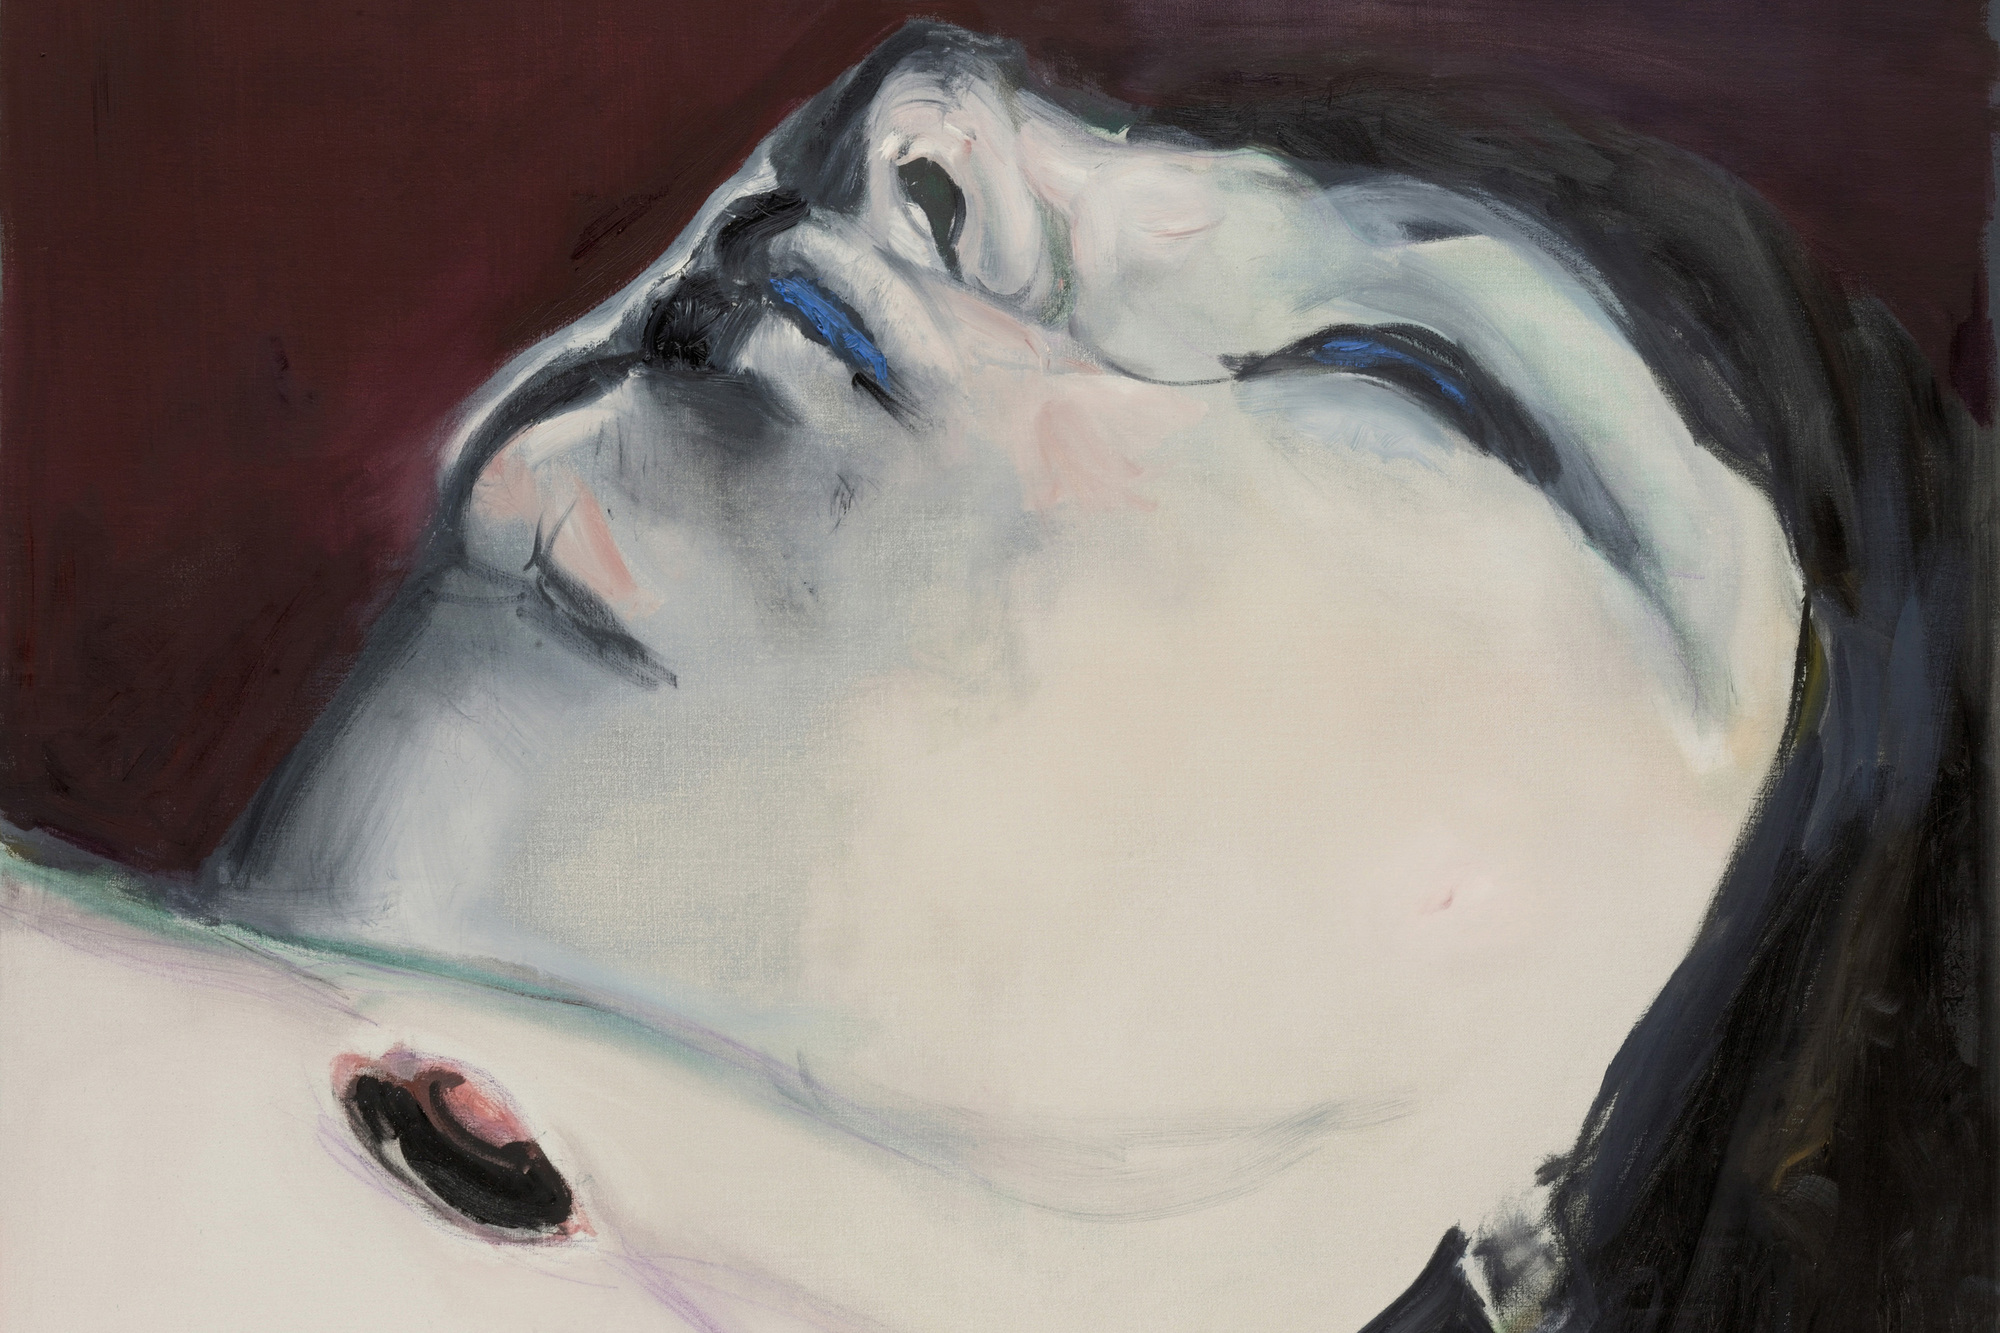 Marlene Dumas. Jen. 2005. Oil on canvas, 43 3/8 × 51 1/4″. The Museum of Modern Art, New York. Fractional and promised gift of Marie-Josée and Henry R. Kravis. © 2008 Marlene Dumas